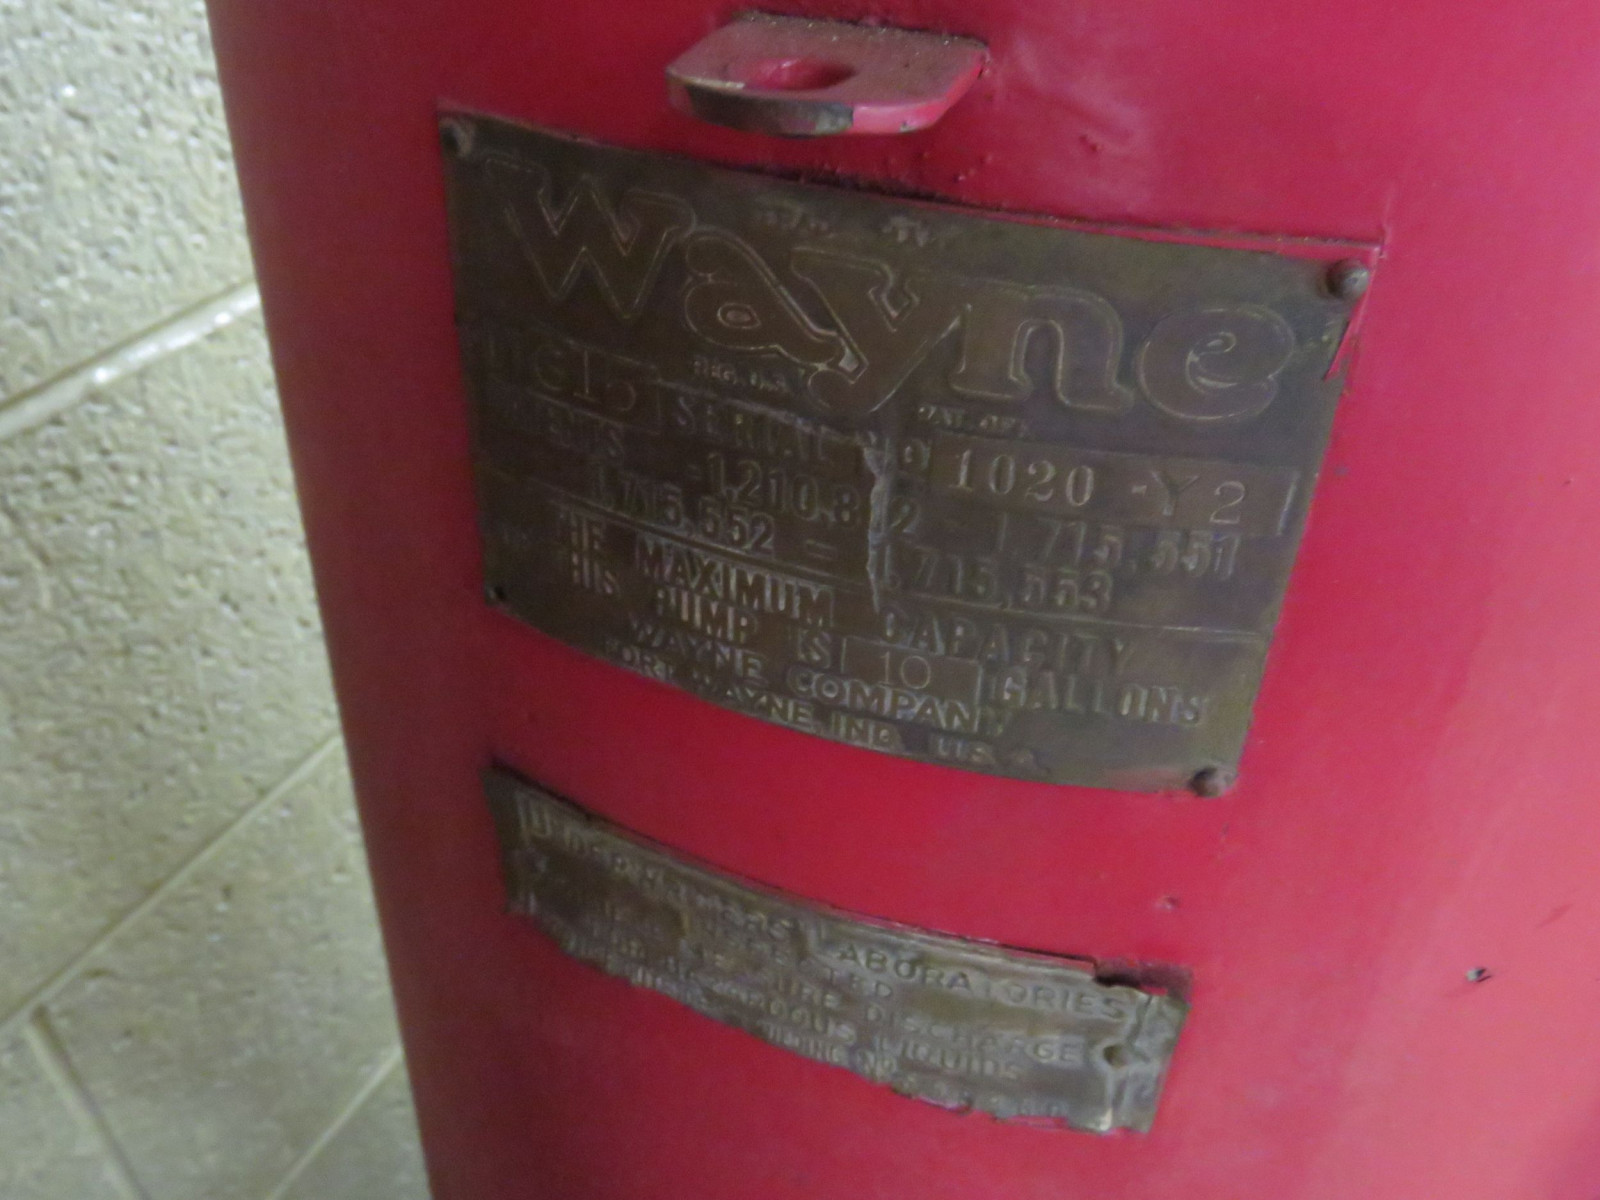 Wayne Upright Visible 10 Gallon Gas Pump - Image 4